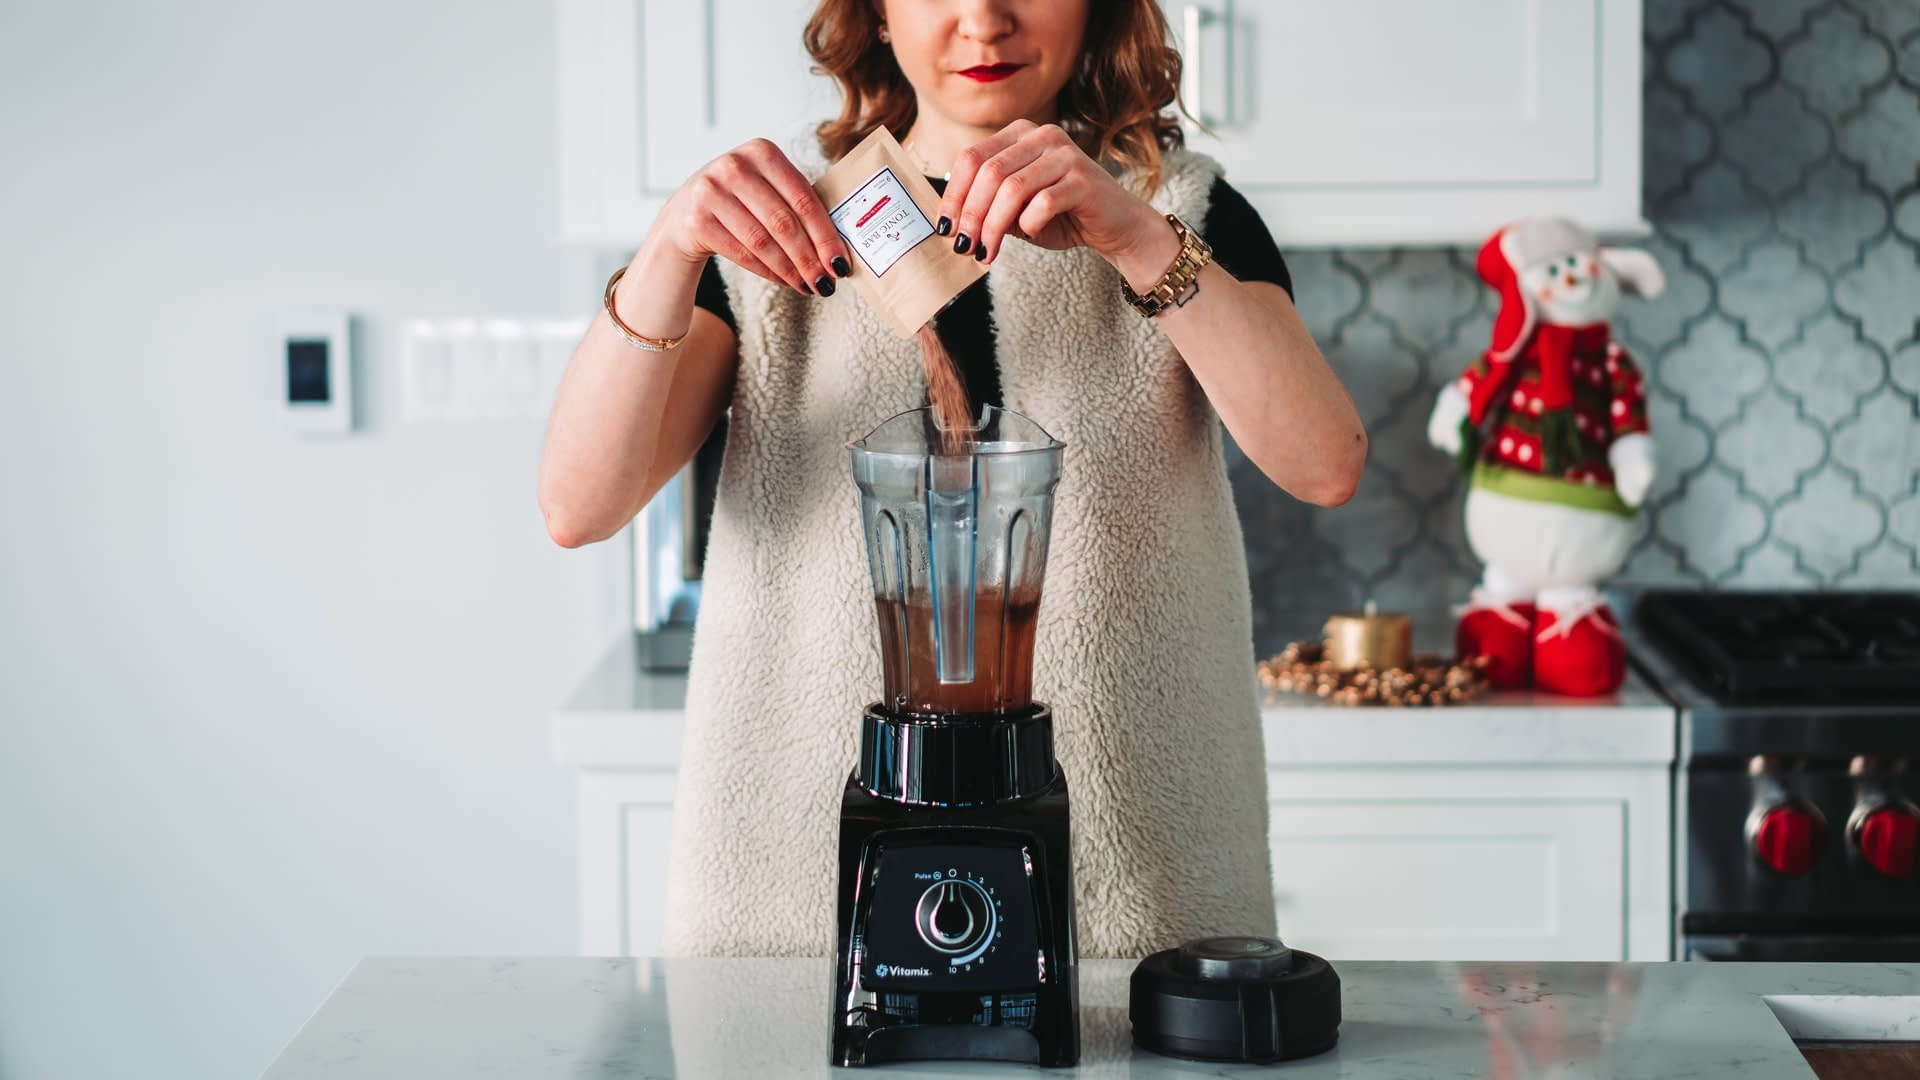 If you're stuck between Magic Bullet Vs NutriBullet, then you've come to the right place.